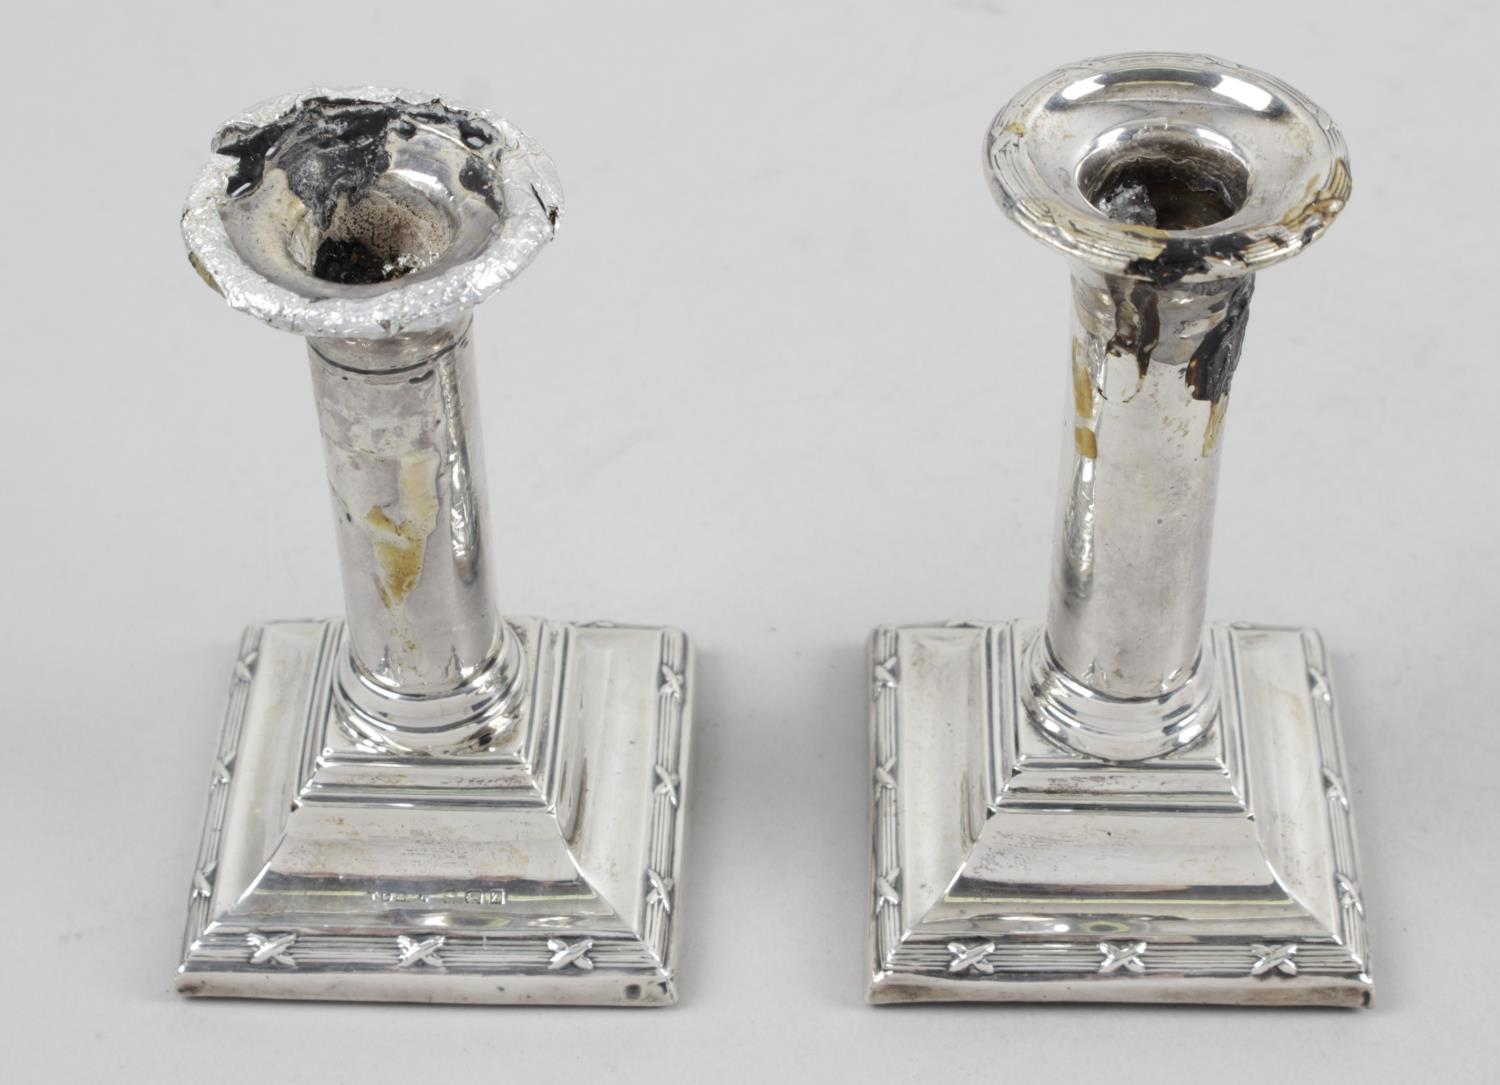 Lot 172 - A pair of modern silver mounted candlesticks,